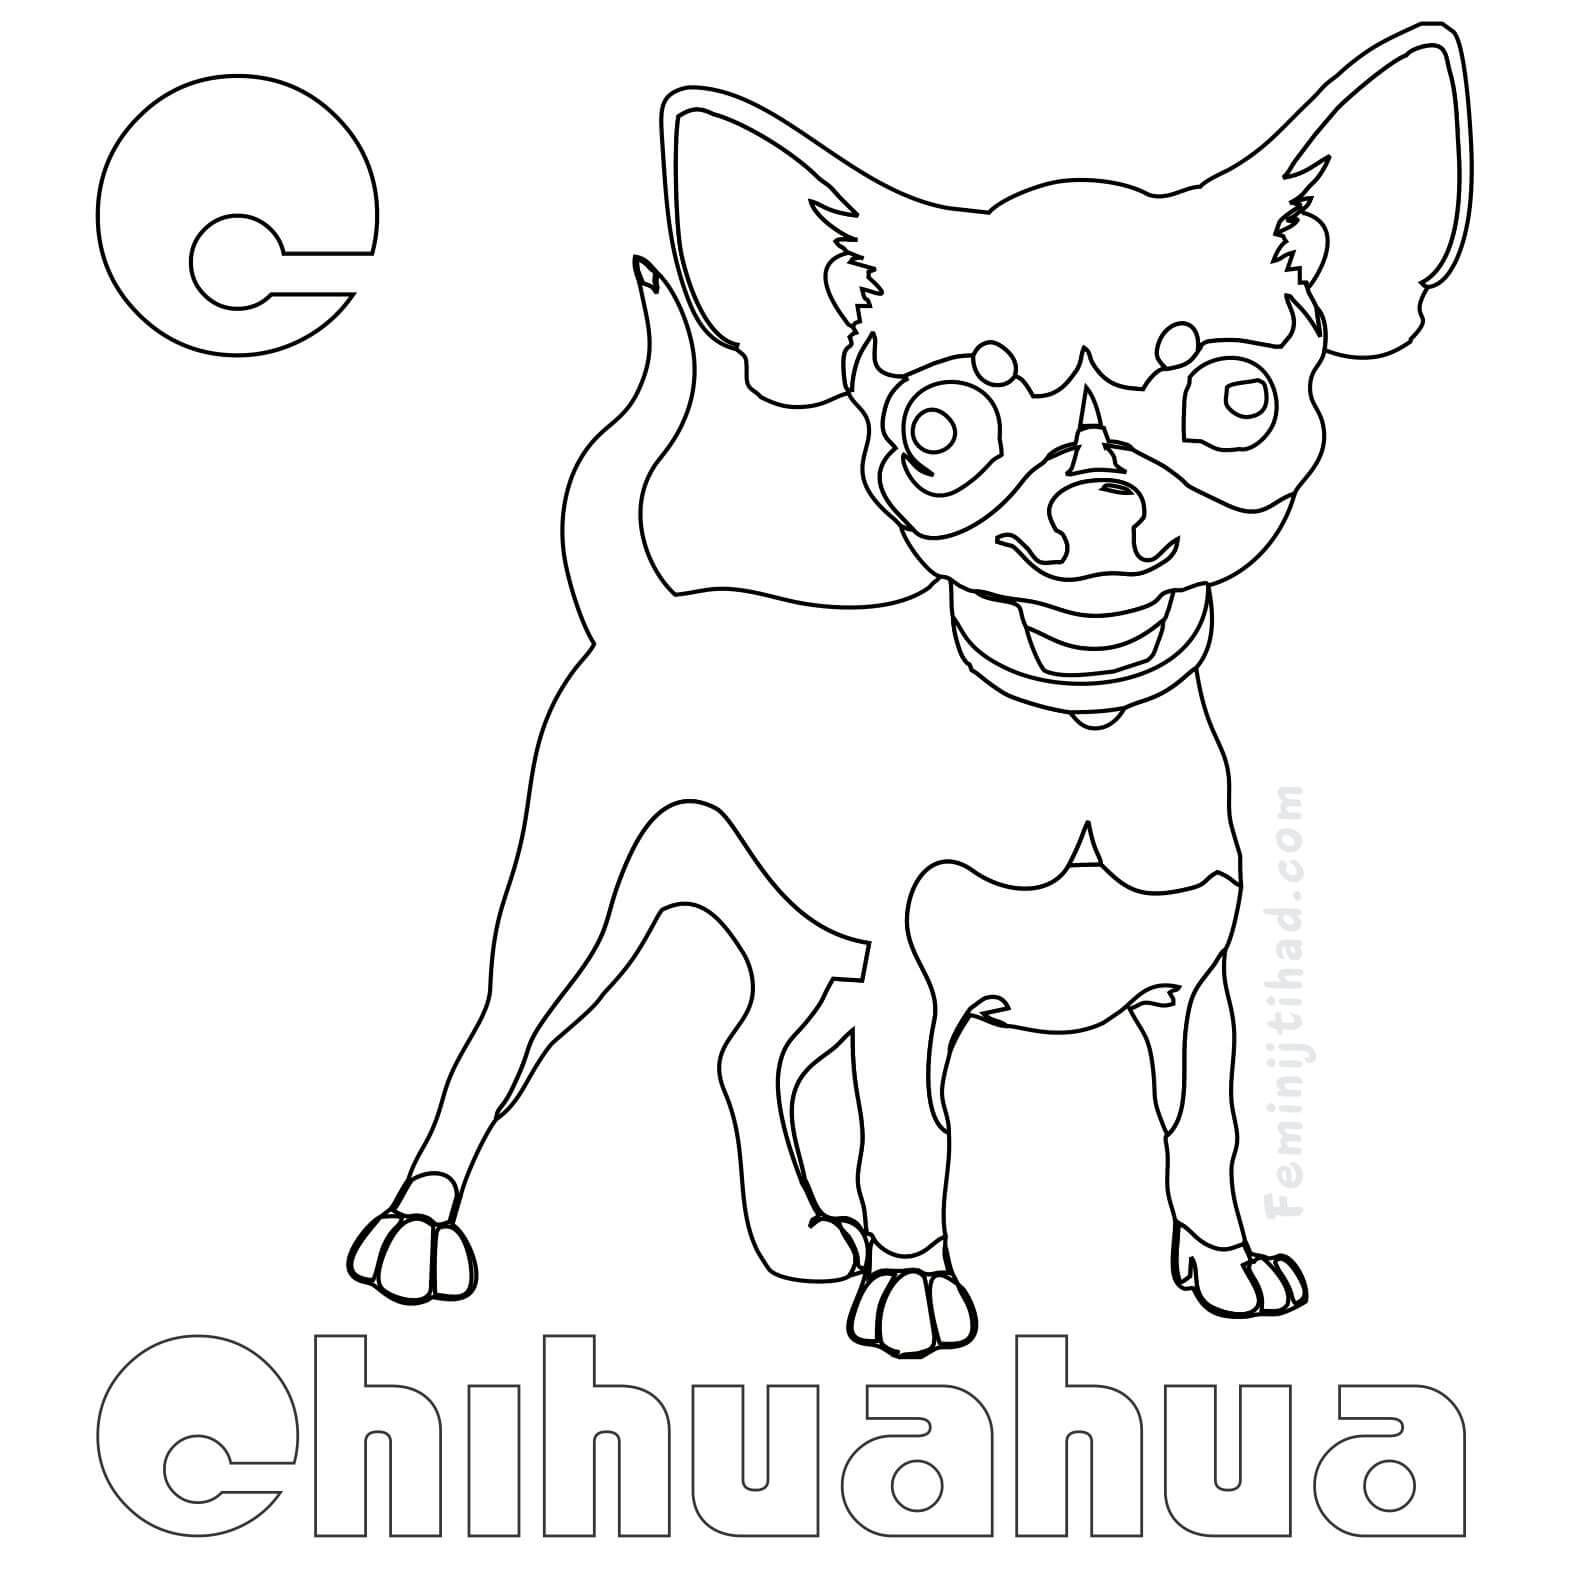 Chihuahua Coloring Pages Puppy Coloring Pages Animal Coloring